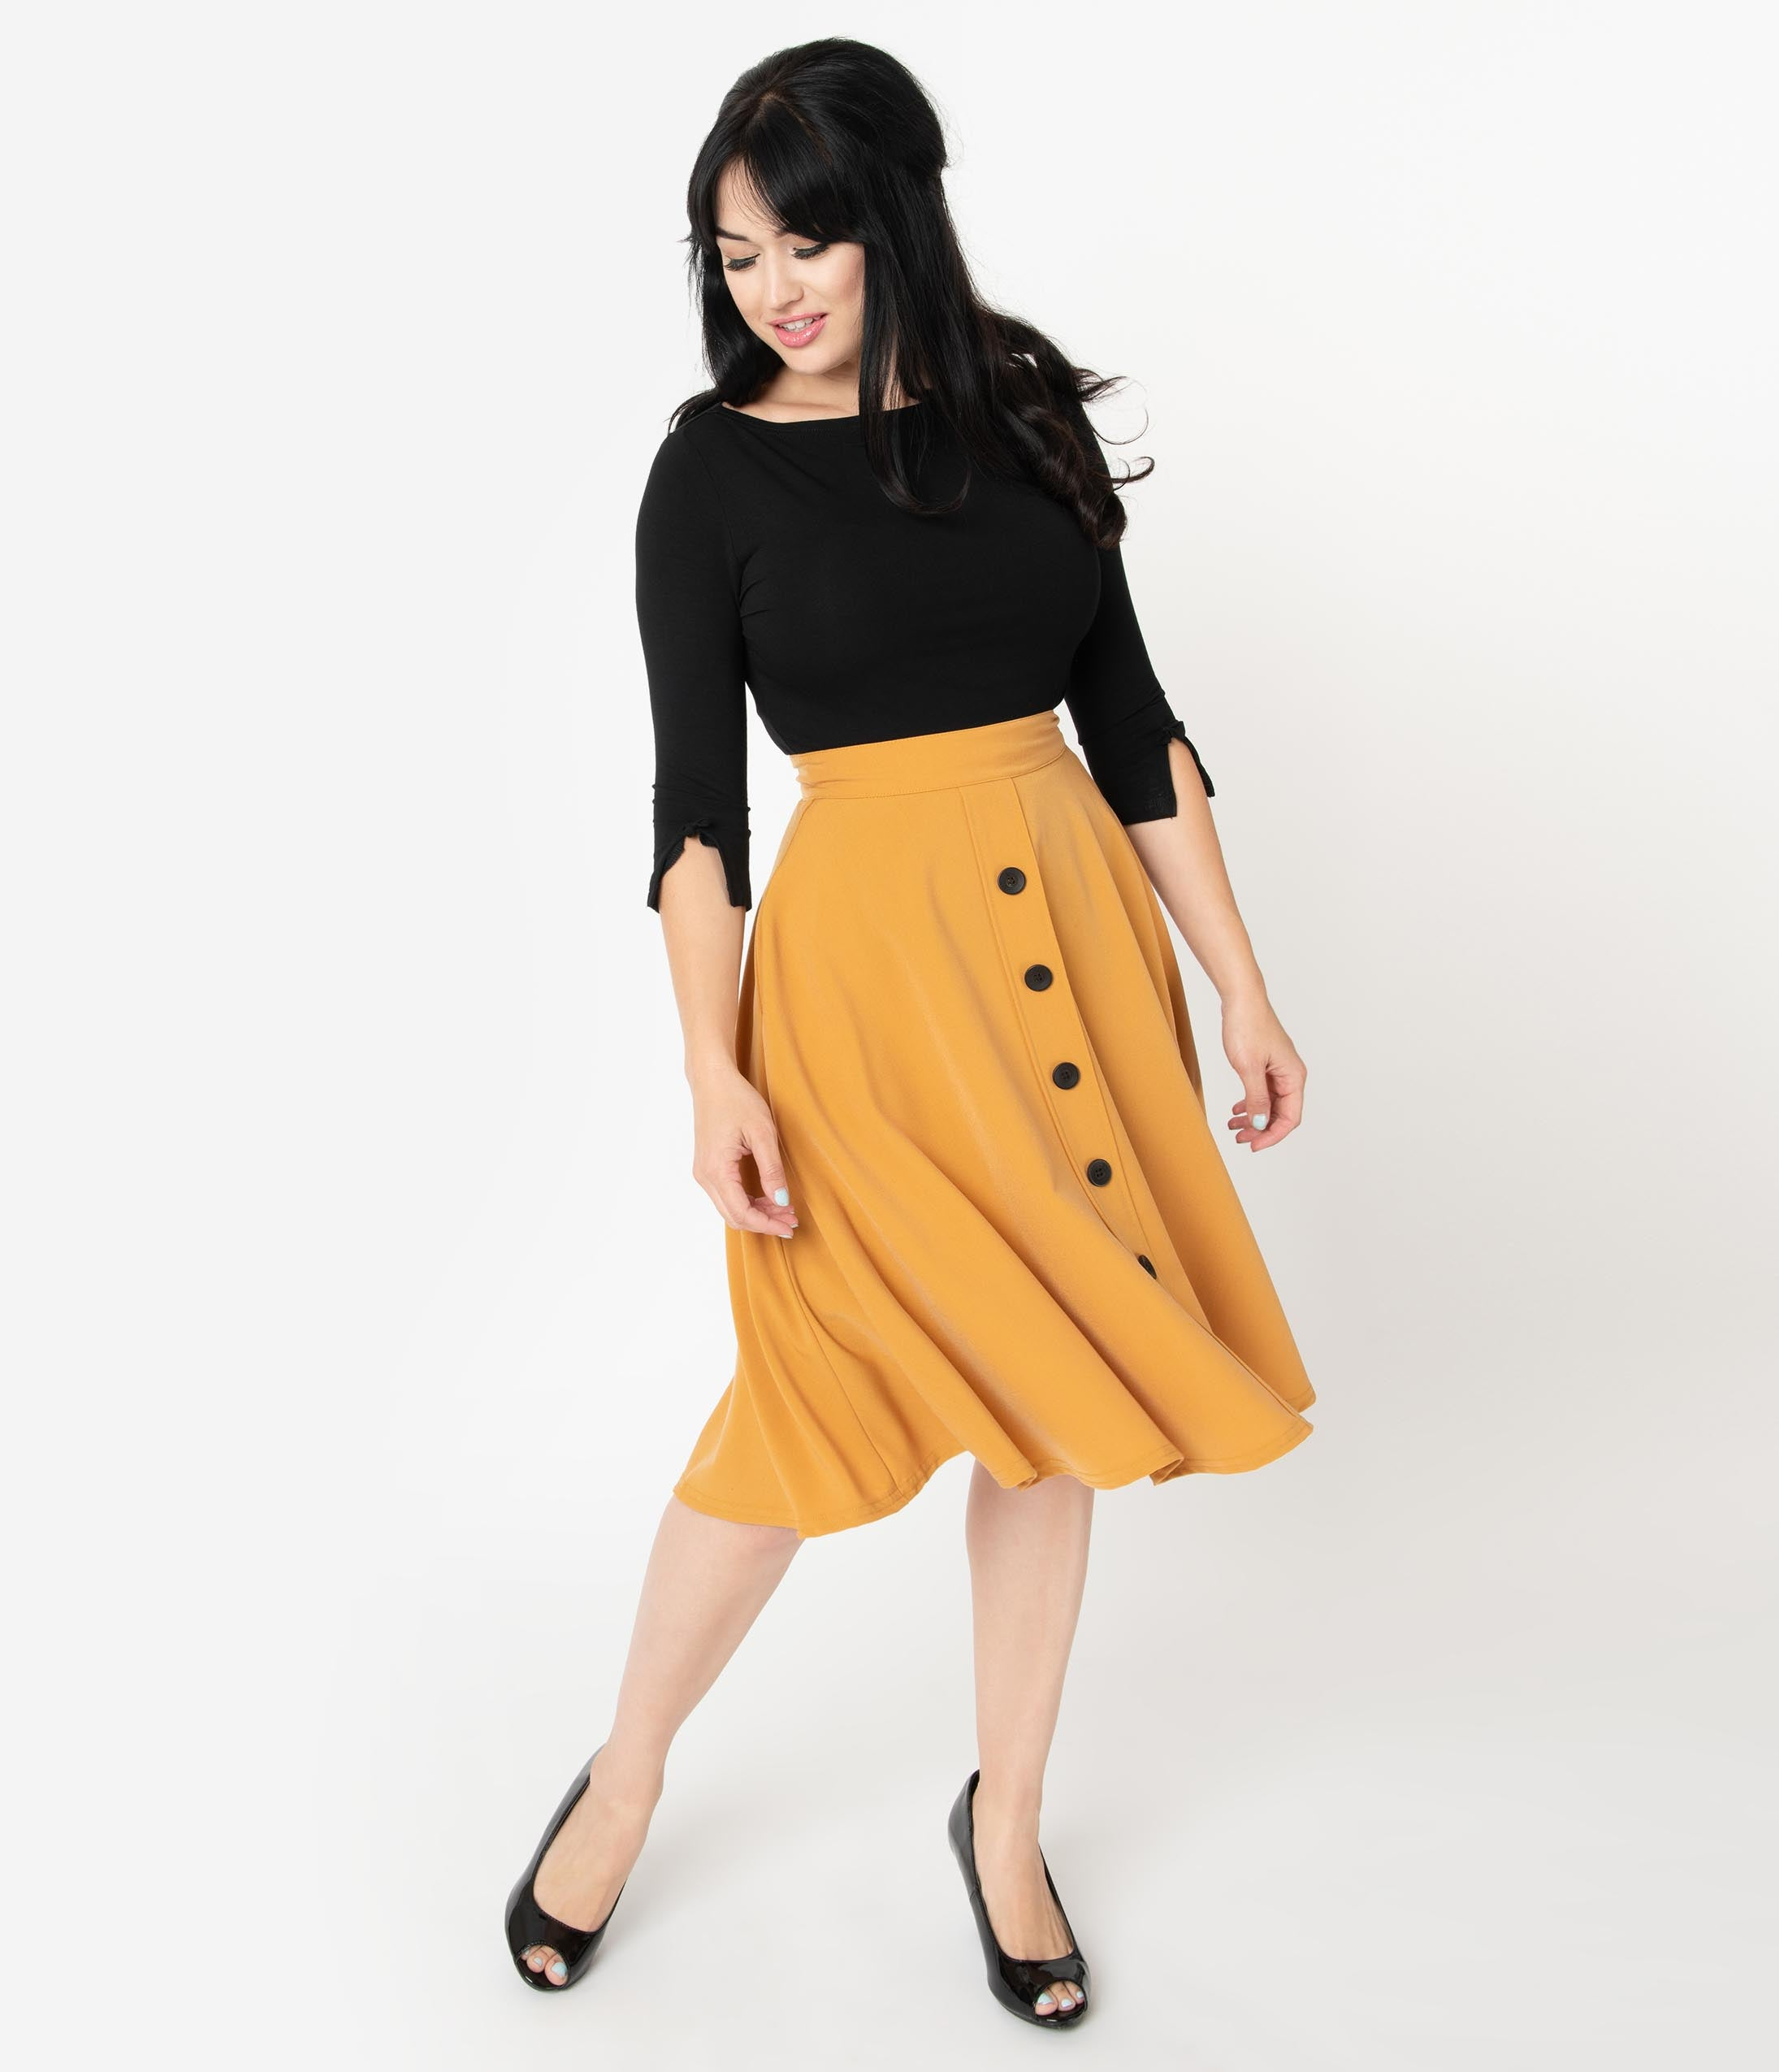 1950s Swing Skirt, Poodle Skirt, Pencil Skirts Steady 1950S Style Mustard Yellow High Waisted Thrills Skirt $52.00 AT vintagedancer.com